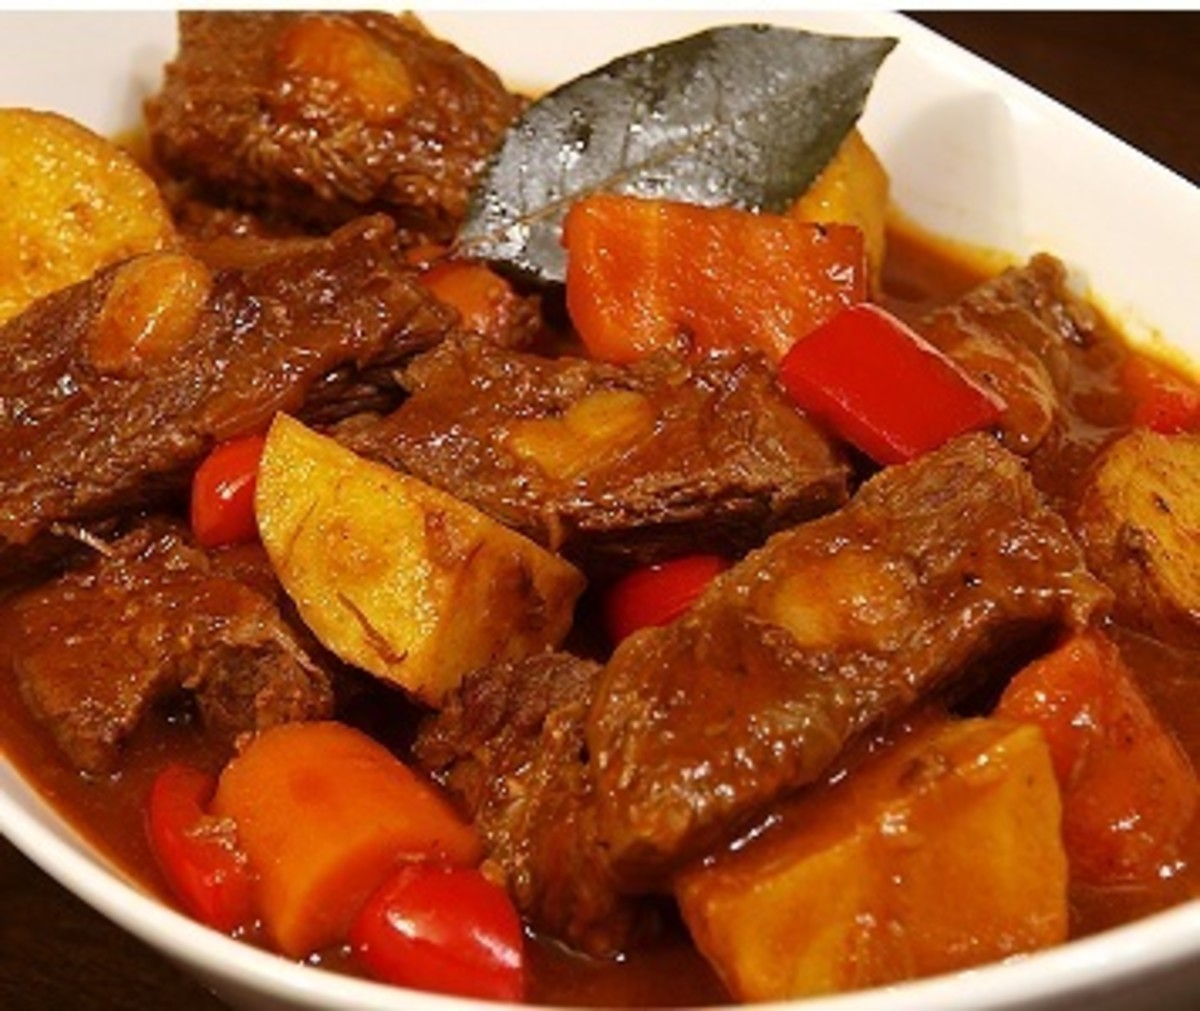 Mechadong Baka (Filipino Beef Stew)